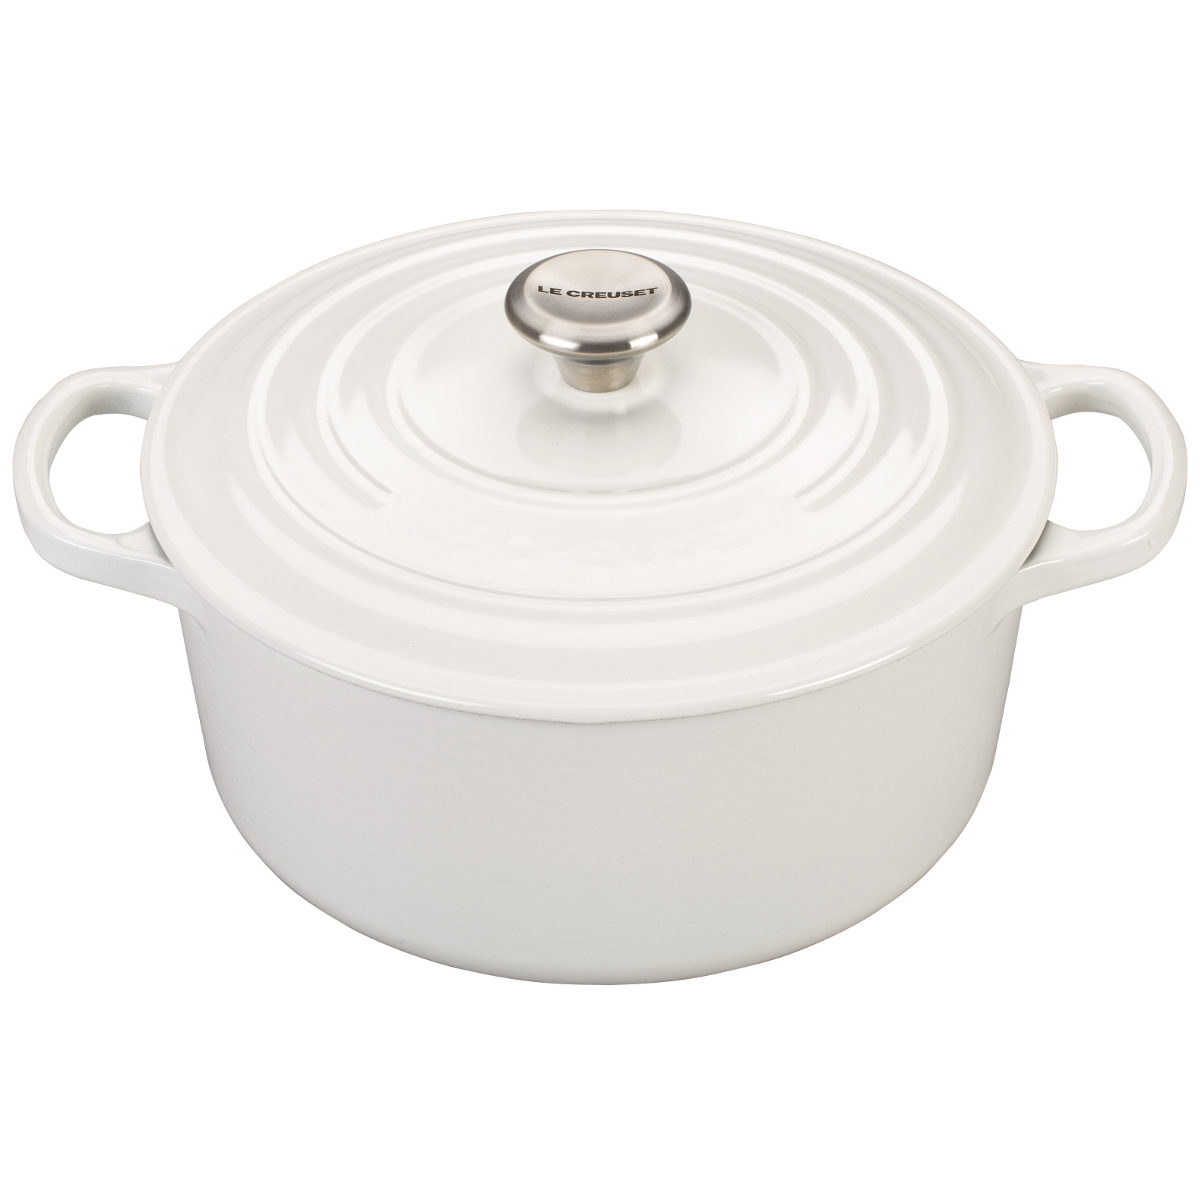 Le Creuset Signature White Enameled Cast Iron 3.5 Quart Round French Oven